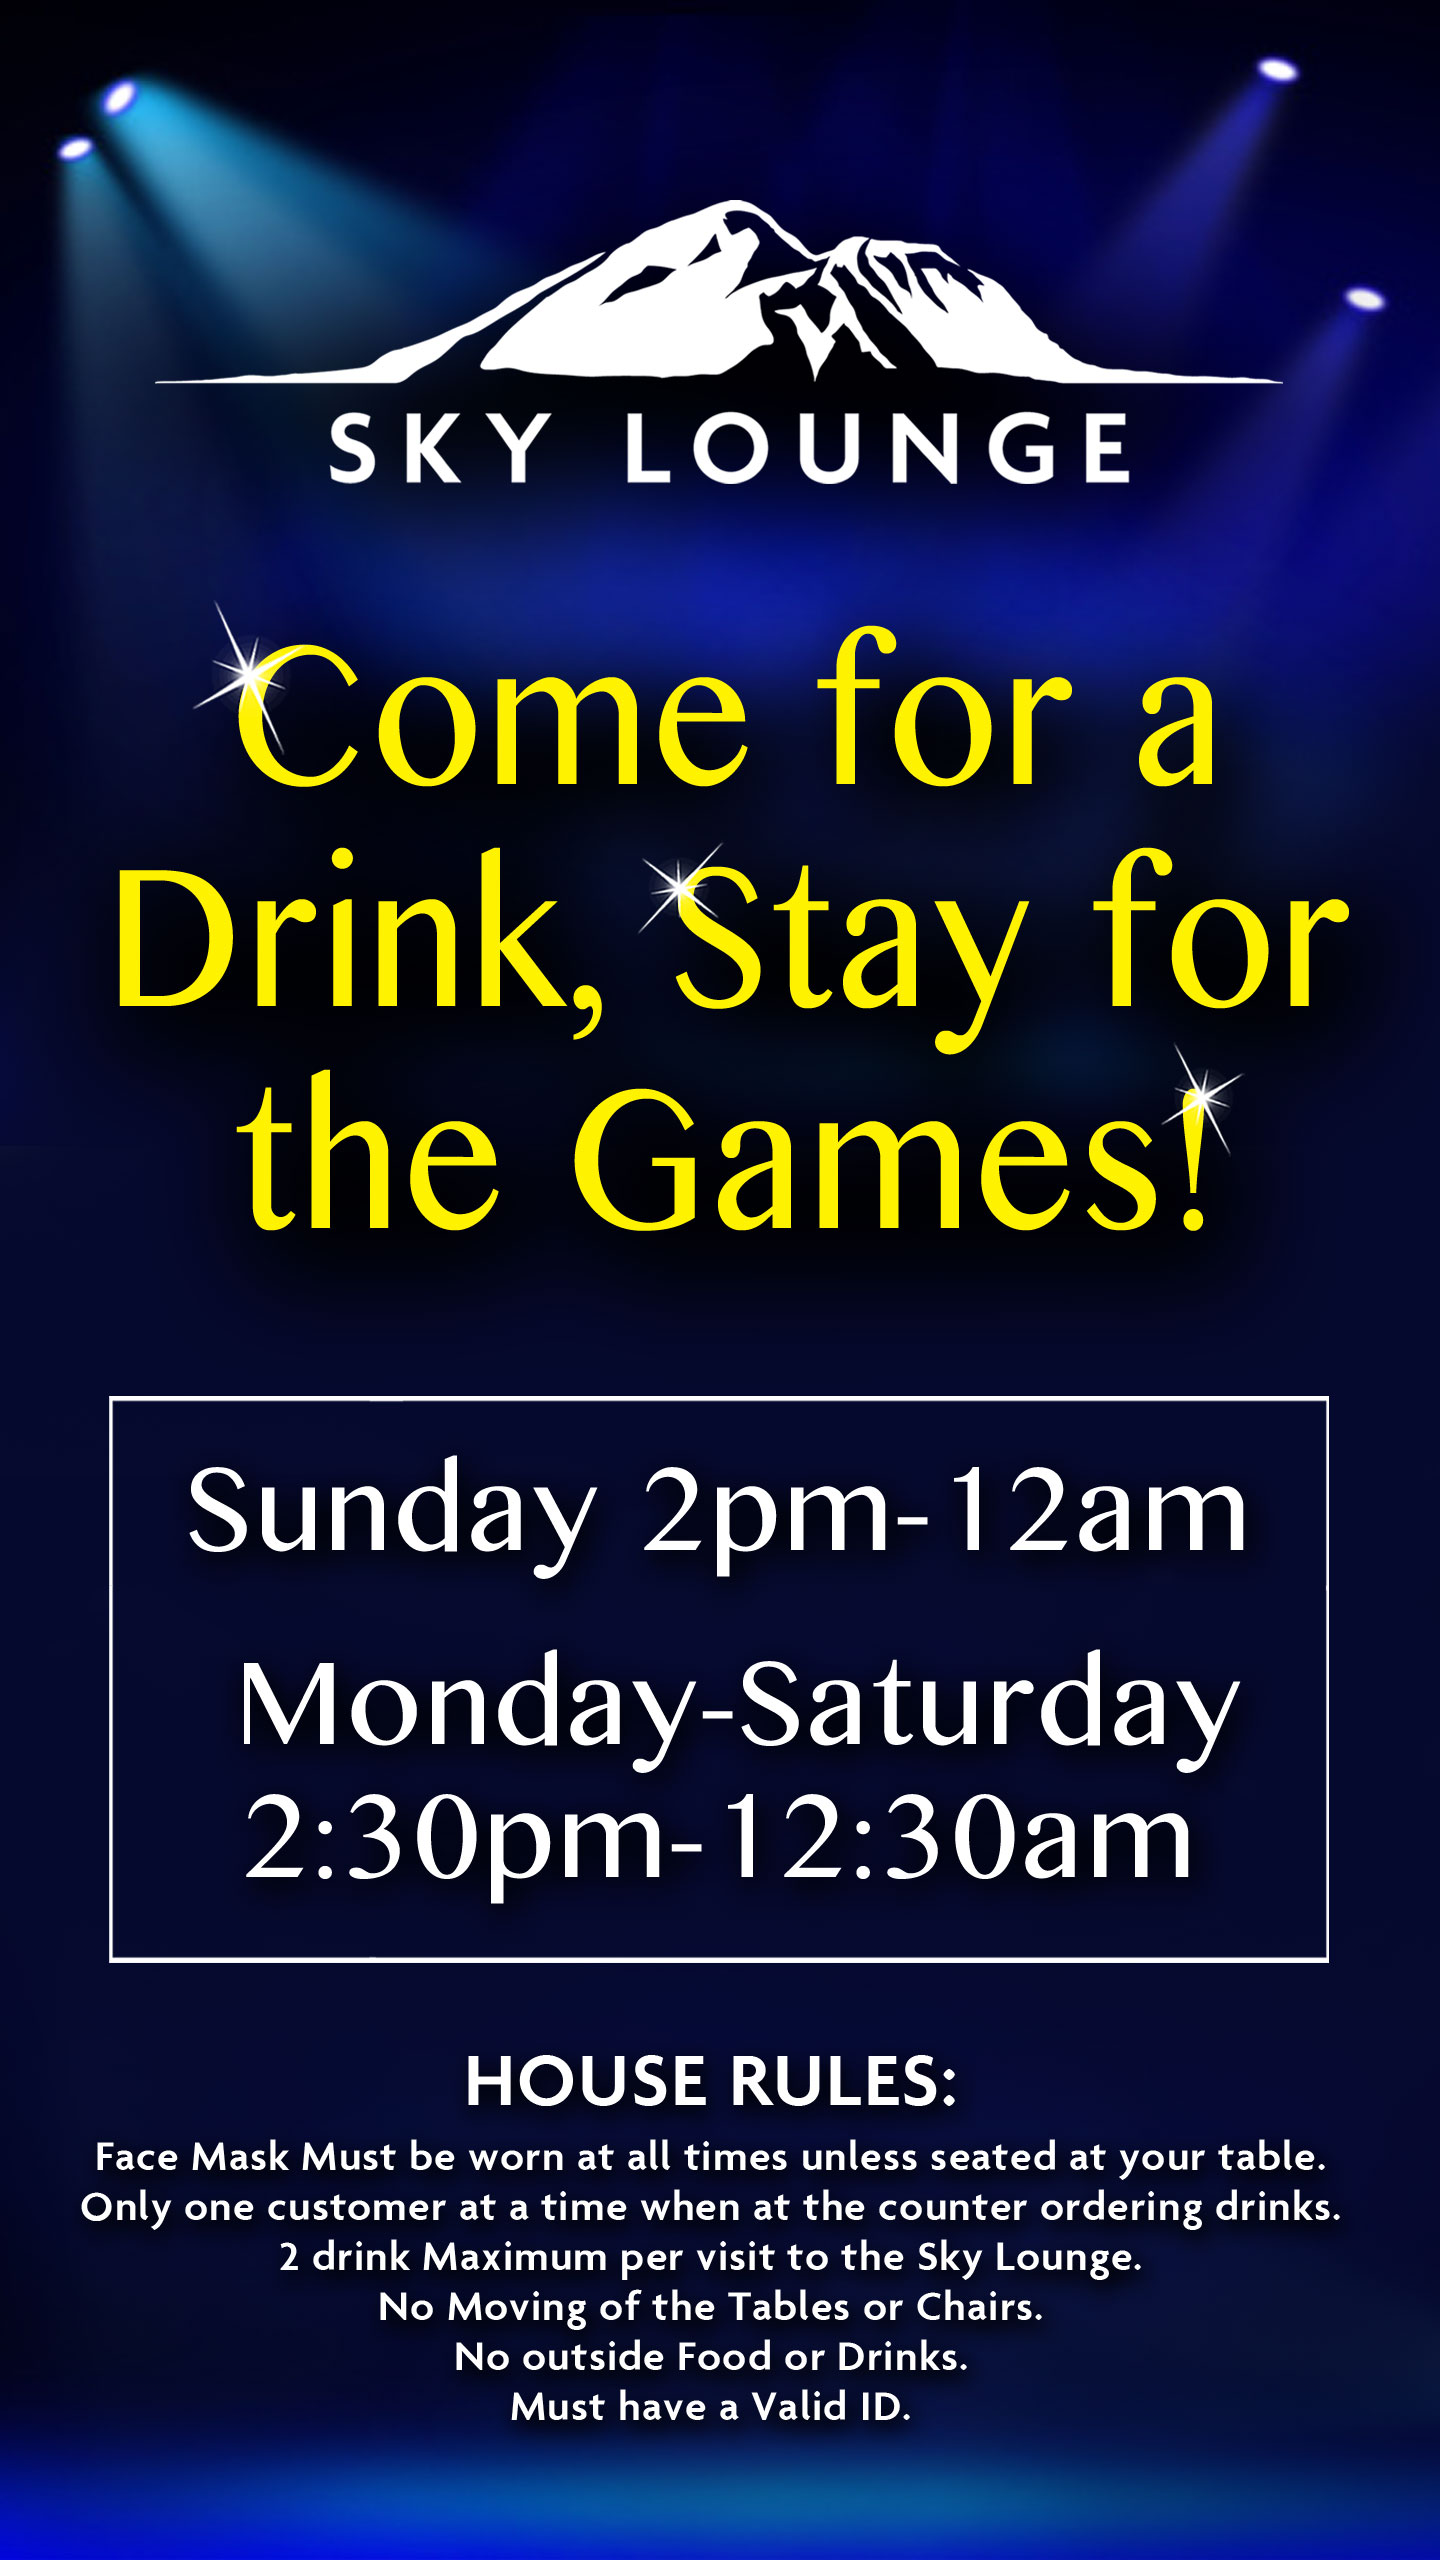 Come for a Drink, Stay for the Games!